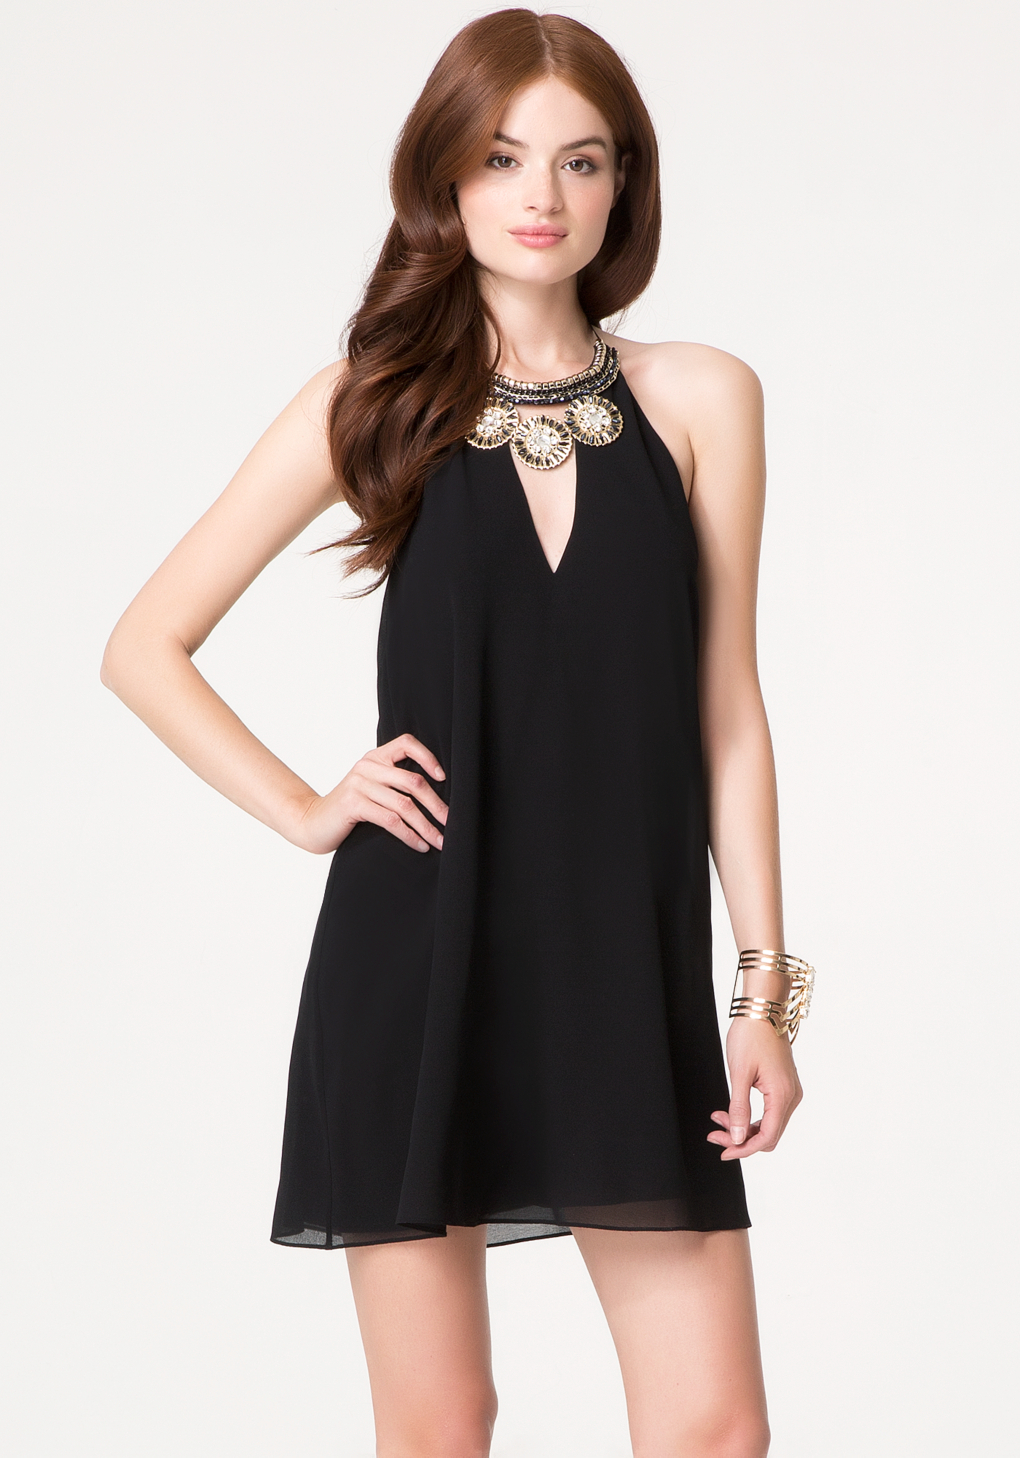 Black dress necklace halter